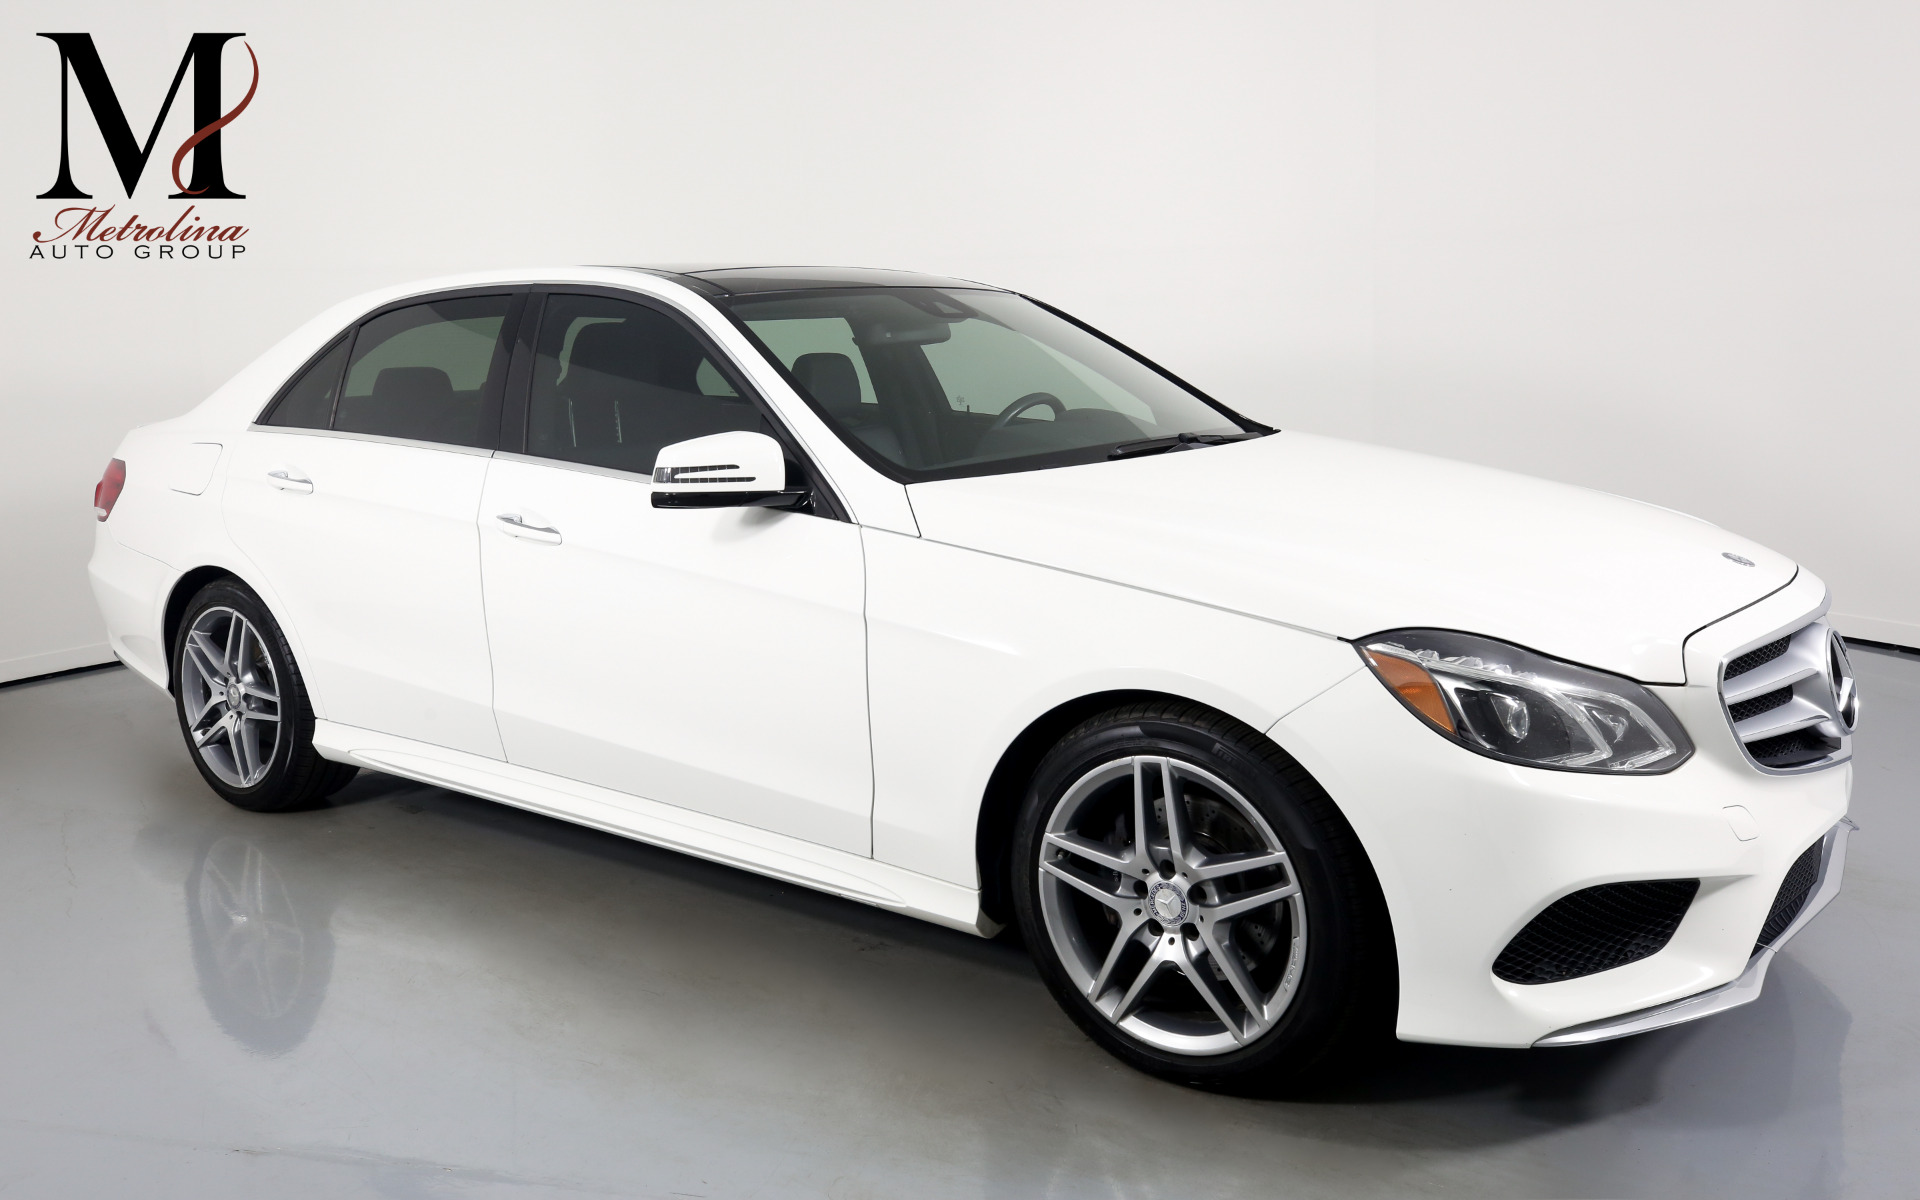 Used 2014 Mercedes-Benz E-Class E 350 Sport 4MATIC for sale $17,996 at Metrolina Auto Group in Charlotte NC 28217 - 1